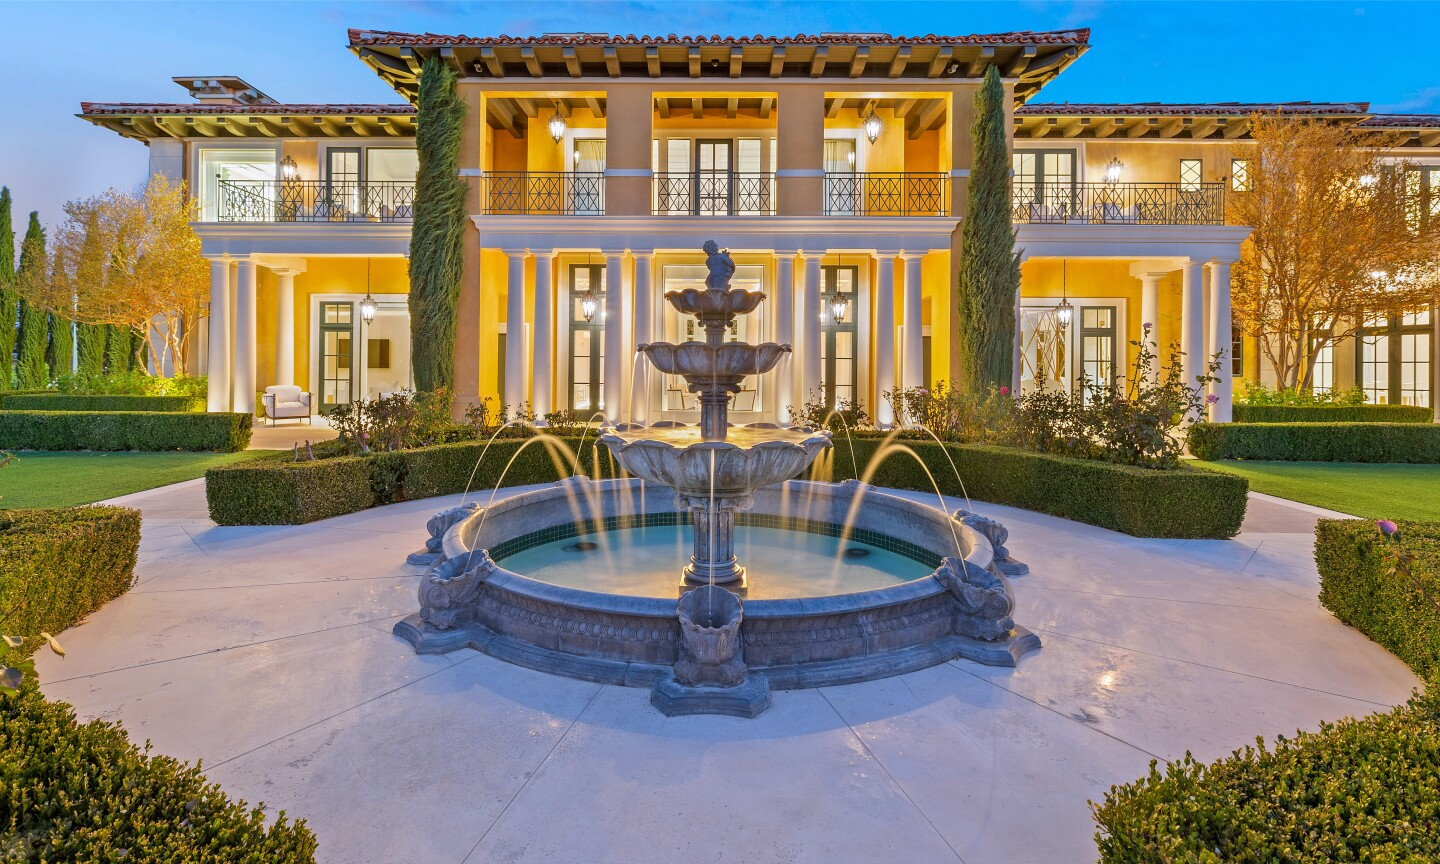 The 13,500-square-foot villa holds six bedrooms, 10 bathrooms and a handful of high-tech living spaces.